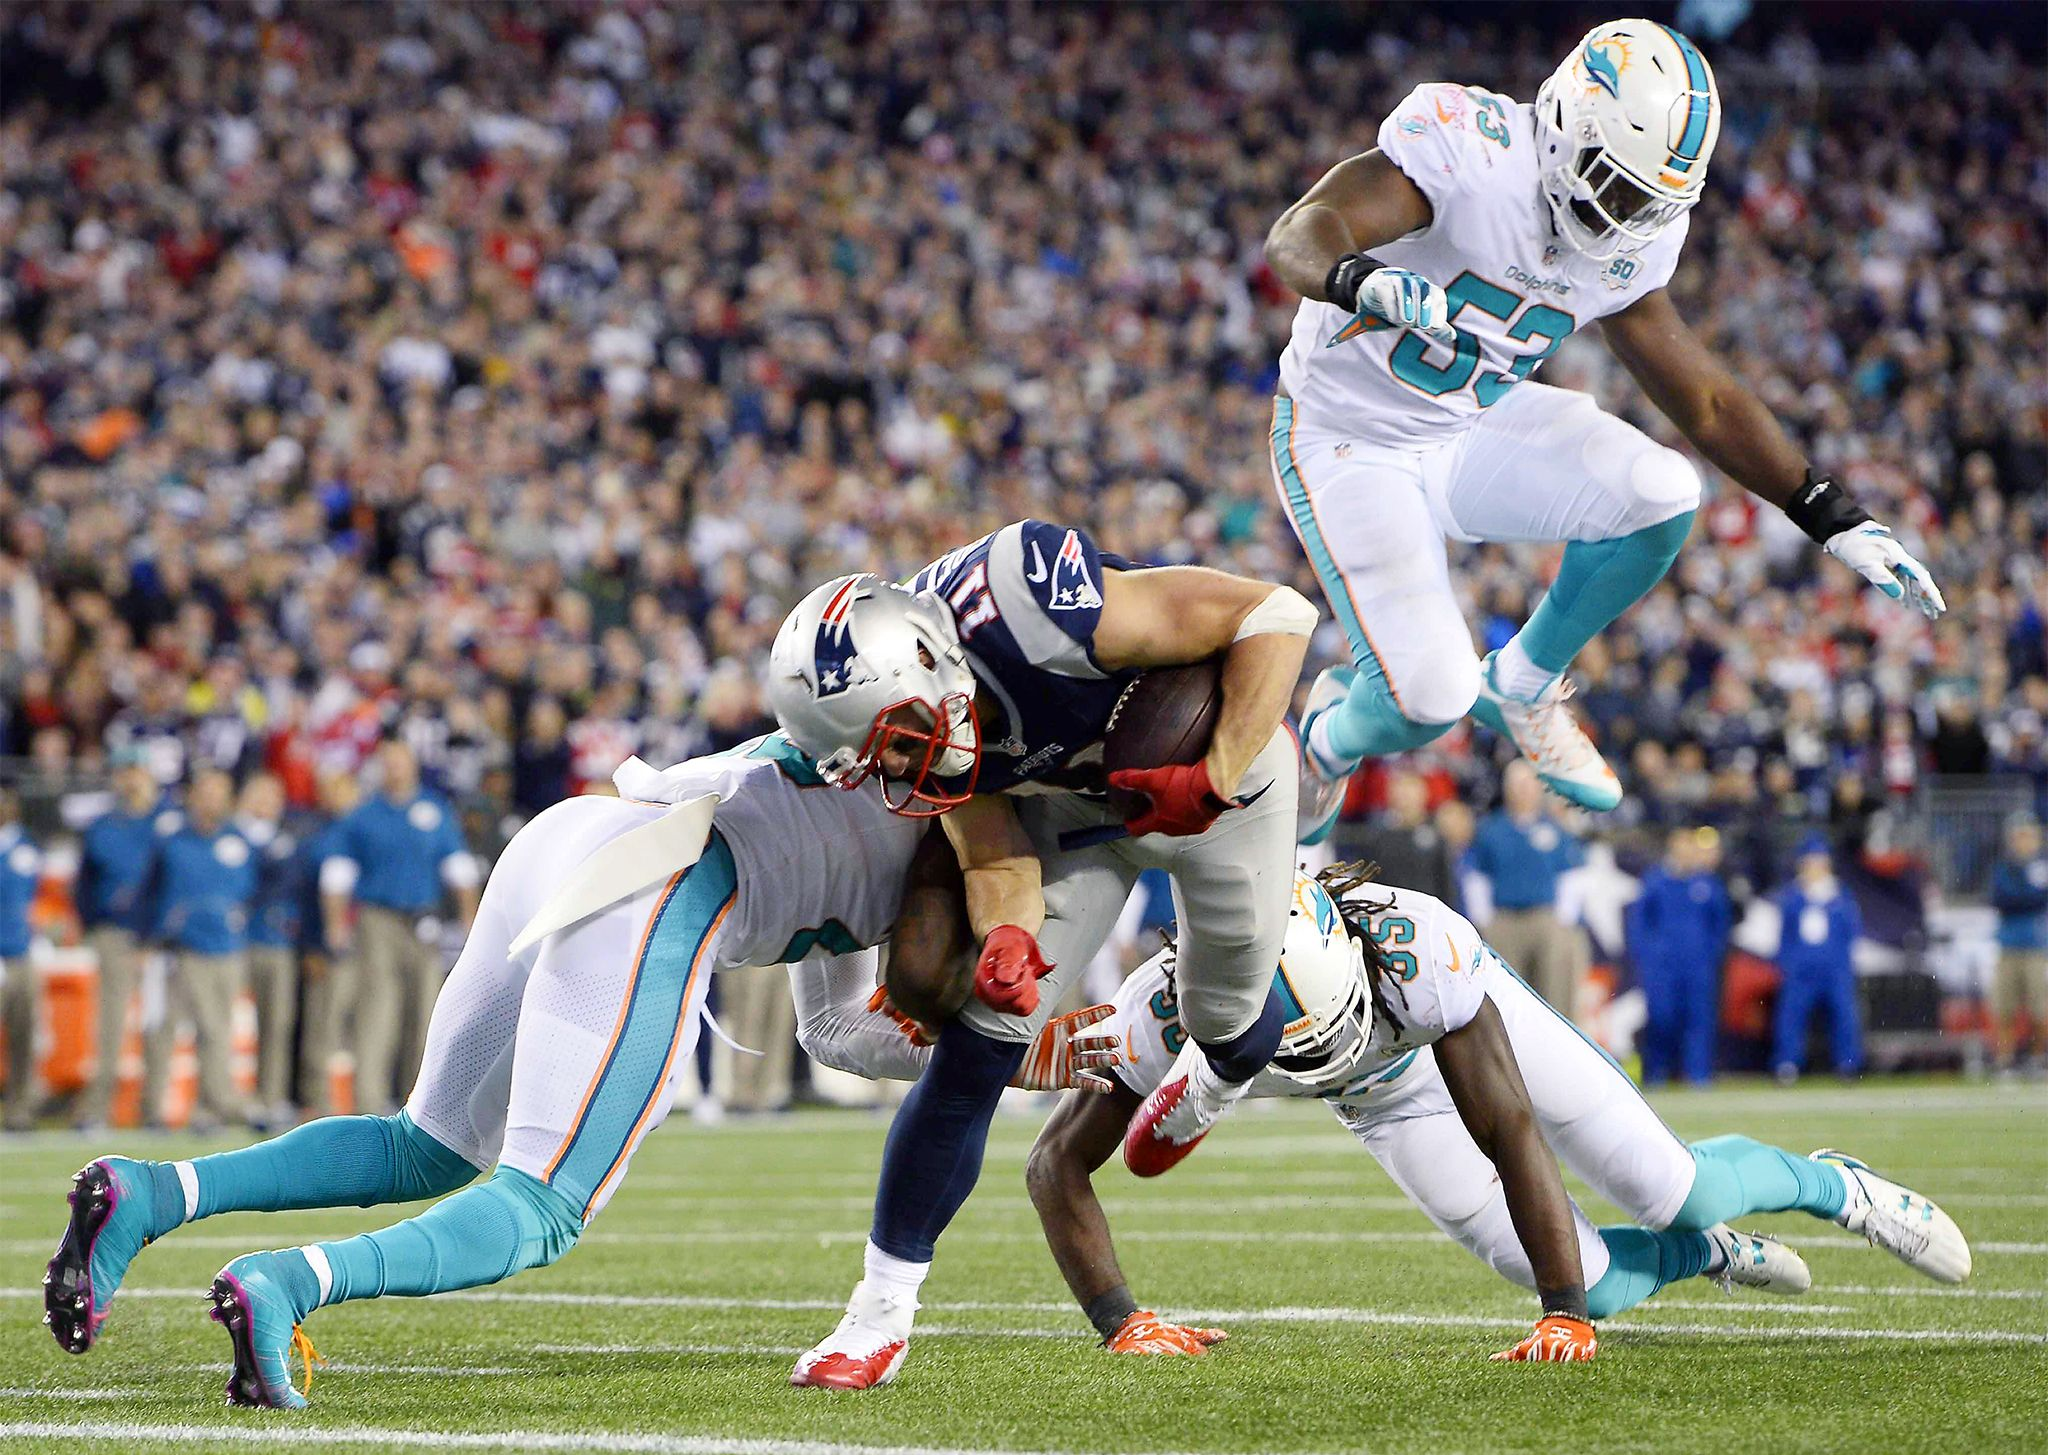 Patriots wide receiver Danny Amendola intends to sign with the Dolphins a source told ESPN He joins Albert Wilson who also committed to joining Miami on